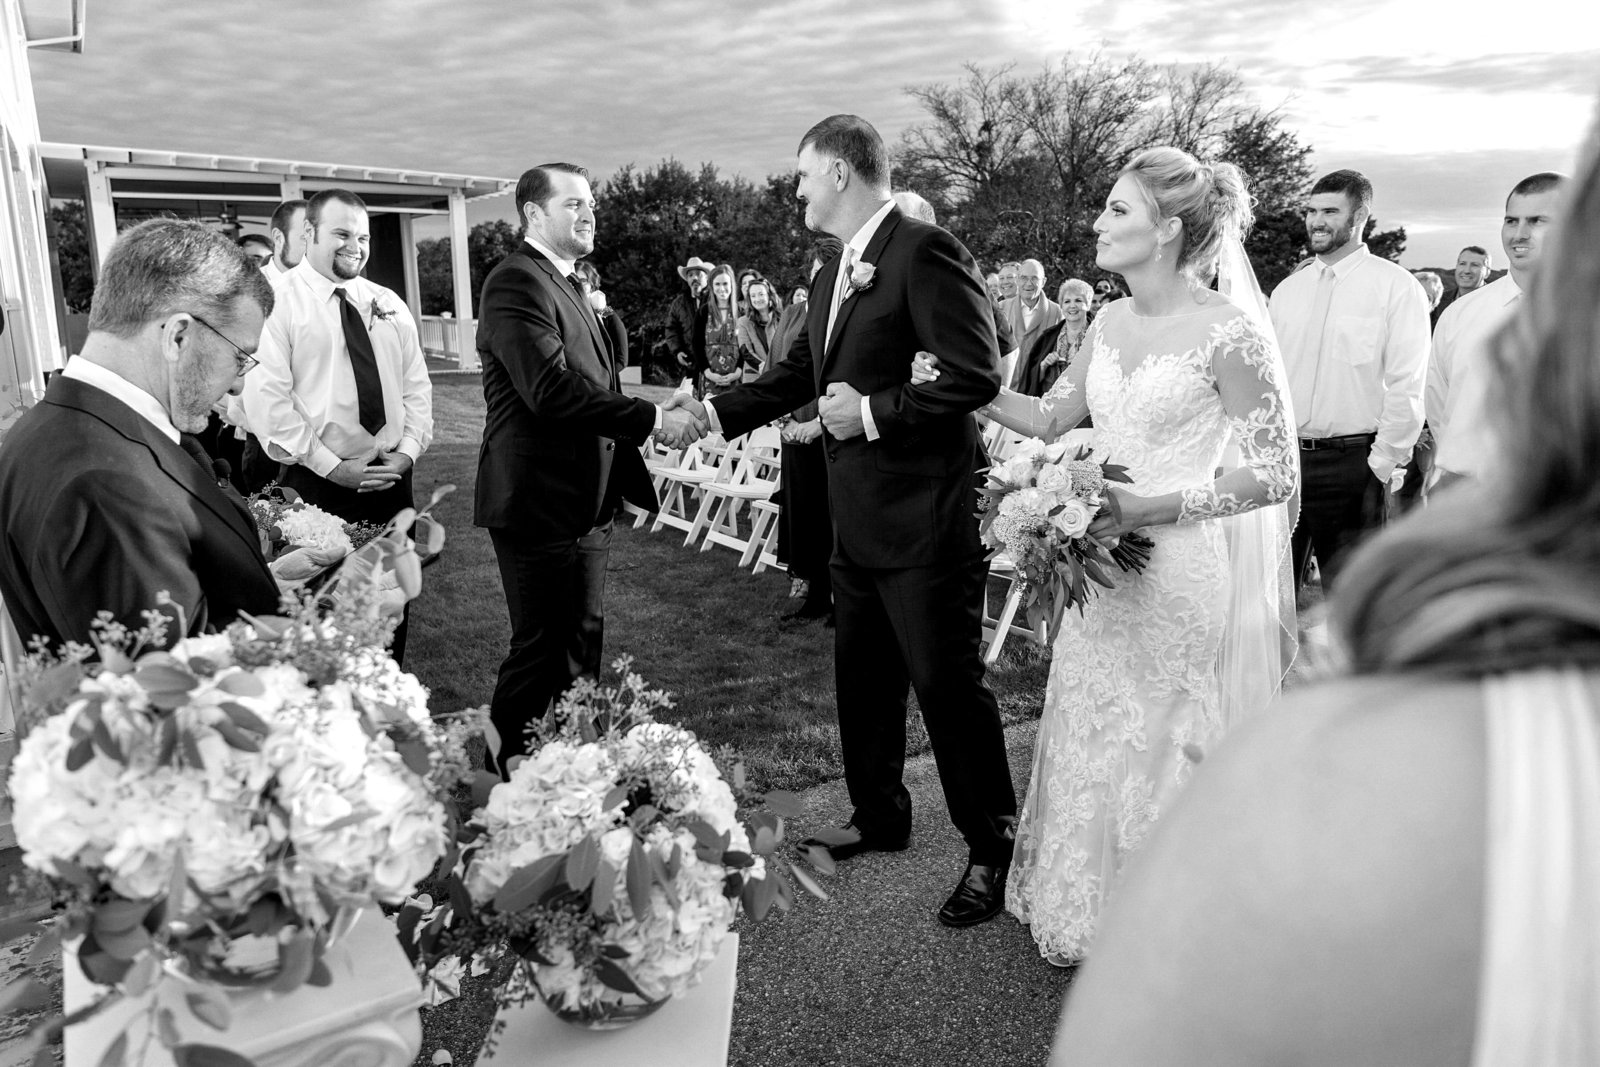 Groom shanking father of the brides hand during ceremony at pecan plantation country club in granbury texas